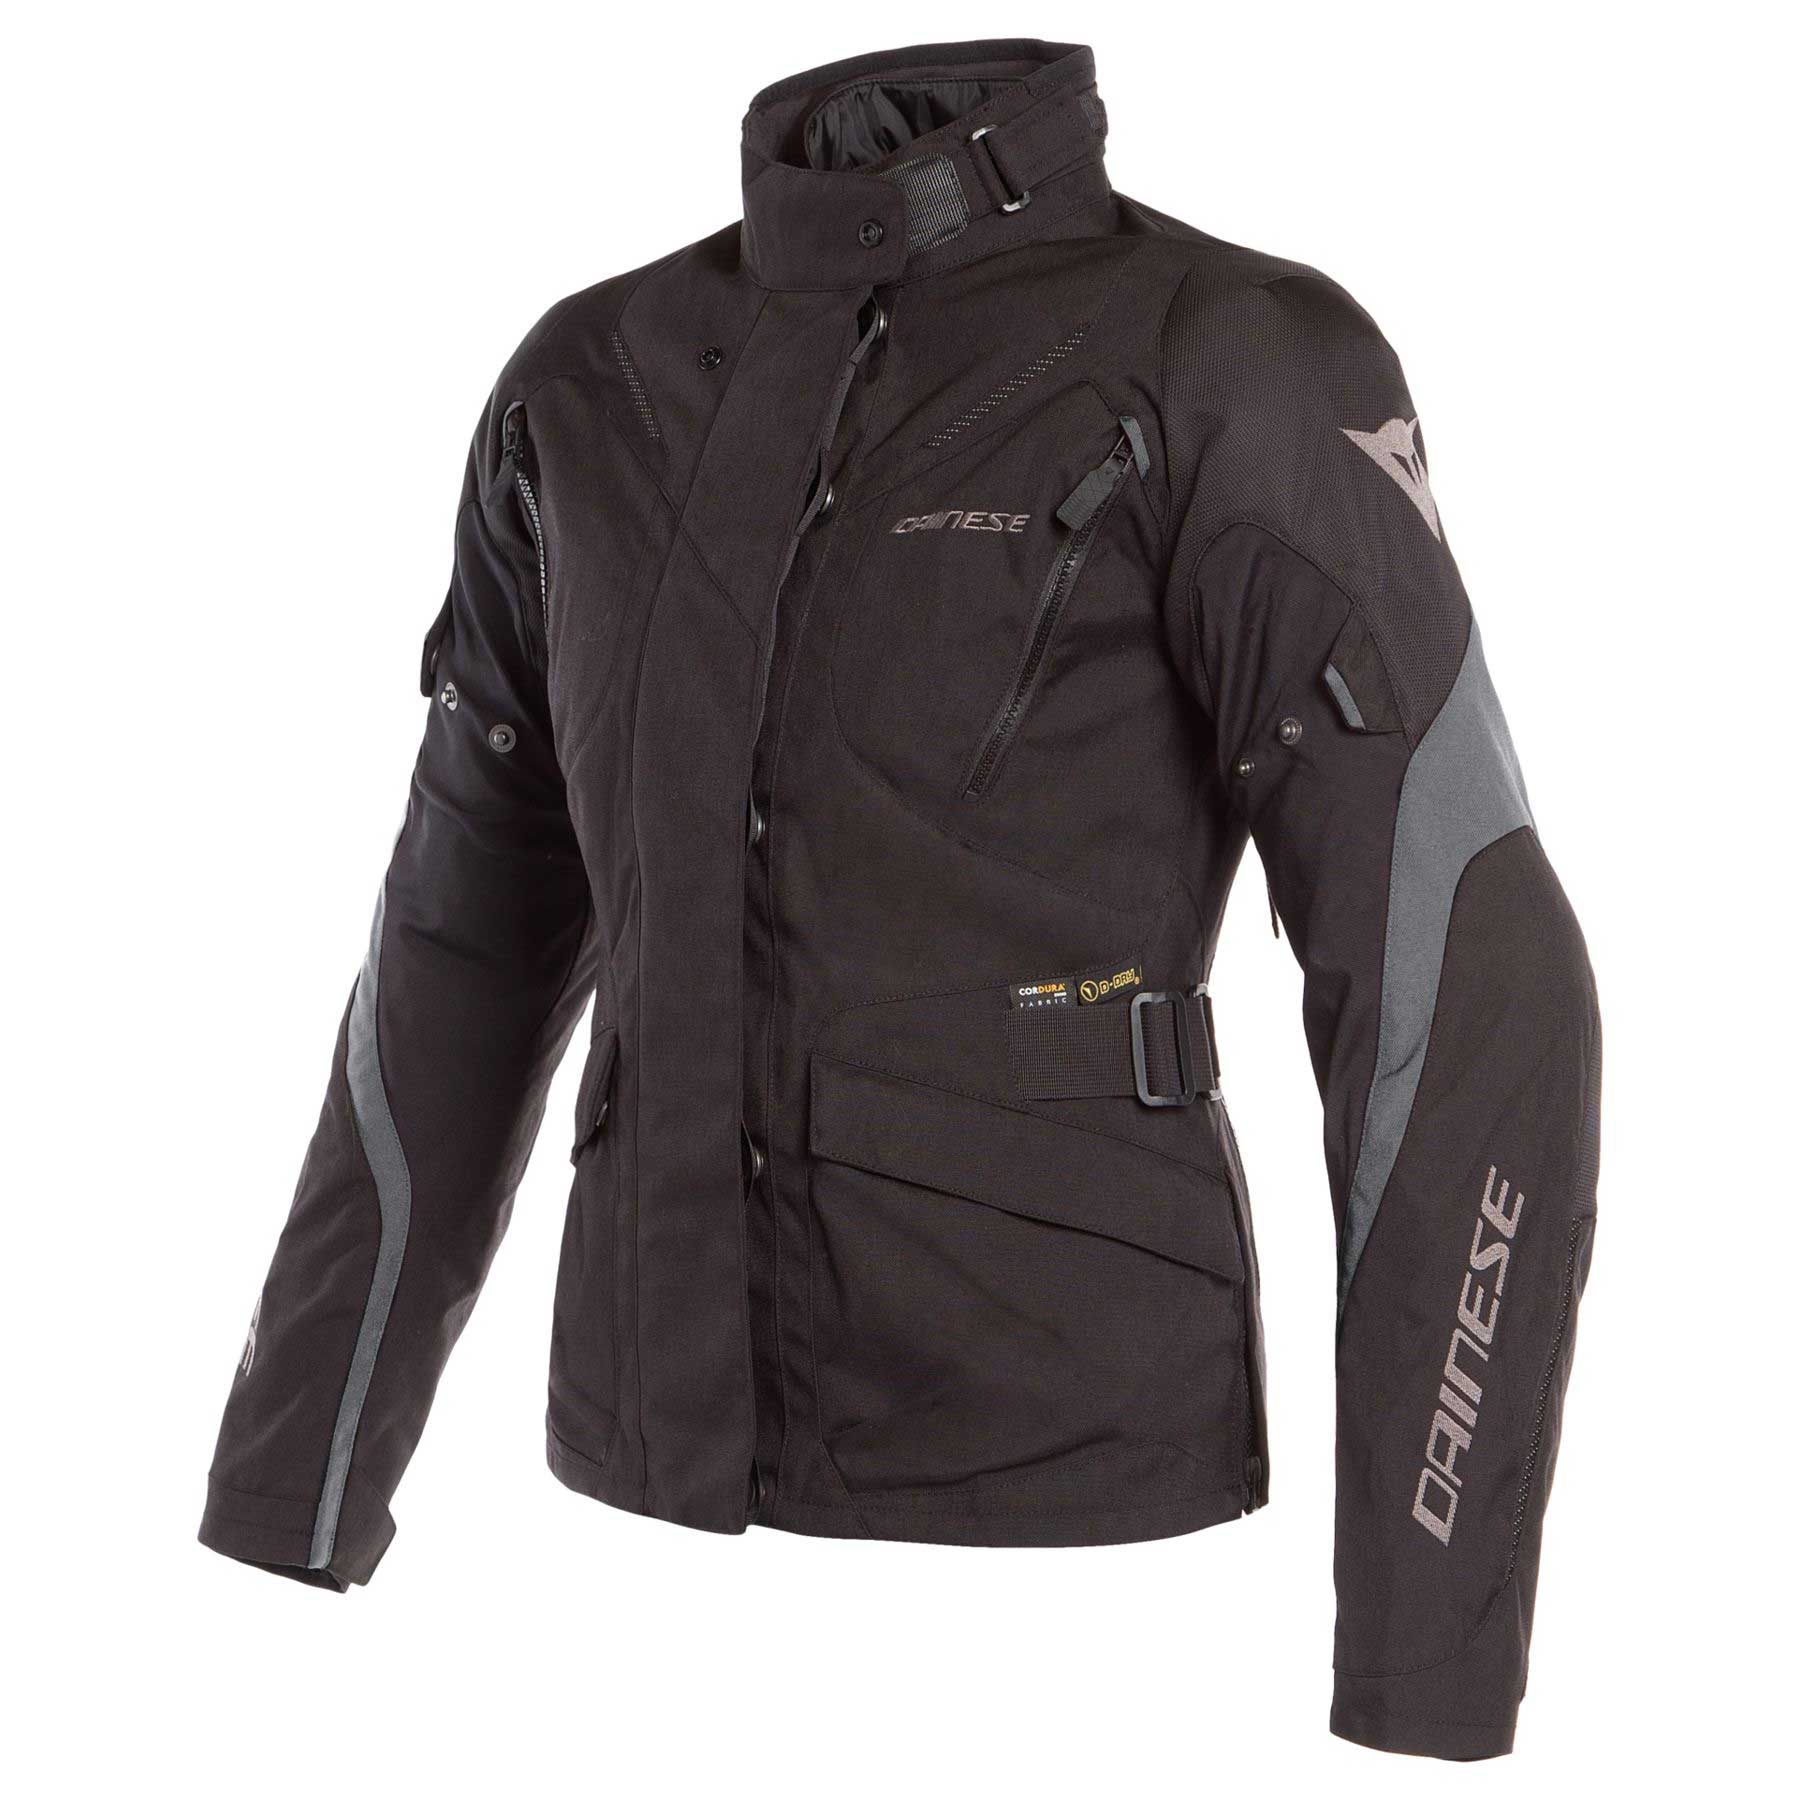 Dainese Giacca Tempest 2 D-dry Donna Nero Grigio